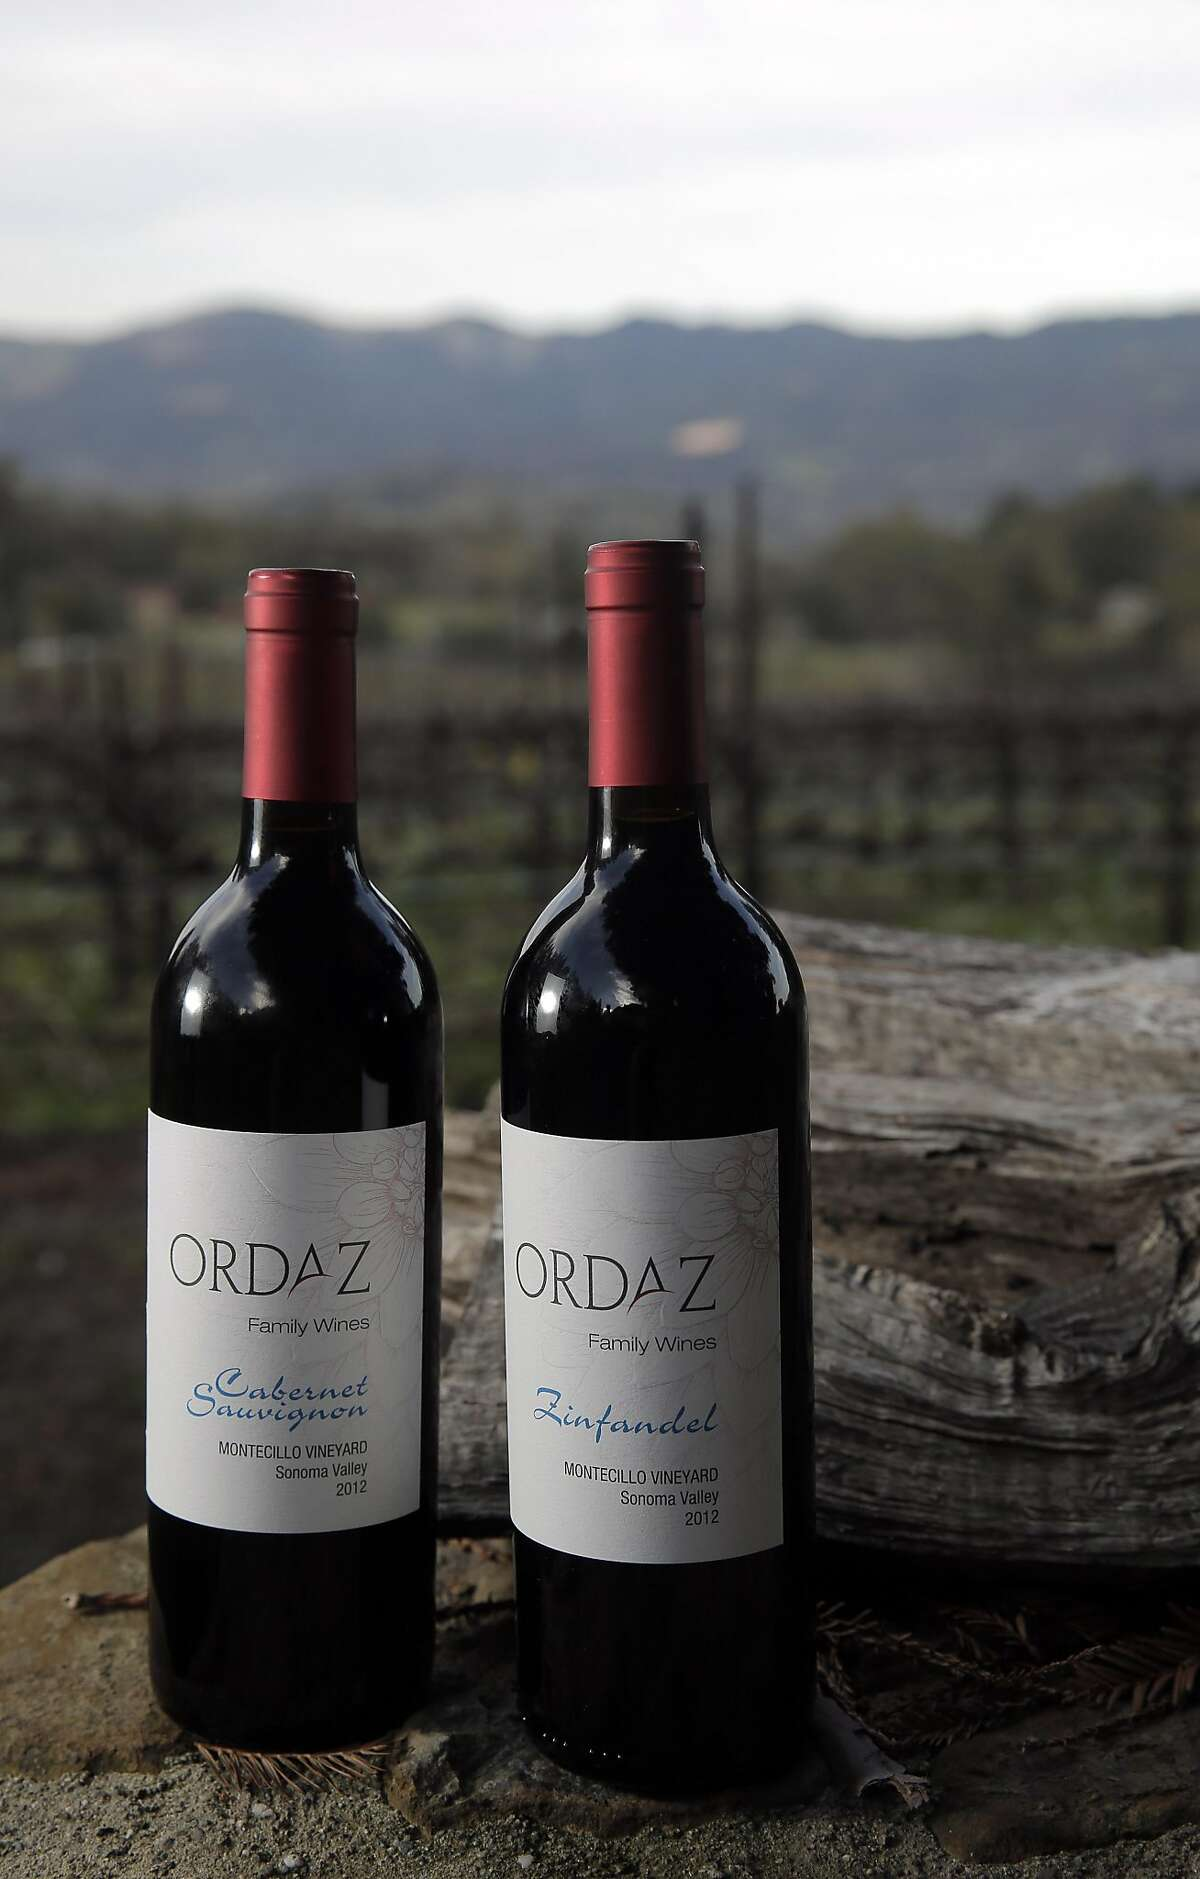 Chuy Ordaz, owner of Palo Alto Vineyard Management, has branched out to producing wine under the label Ordaz Family Wines in Glen Ellen, Calif., on Tuesday, February 23, 2016,